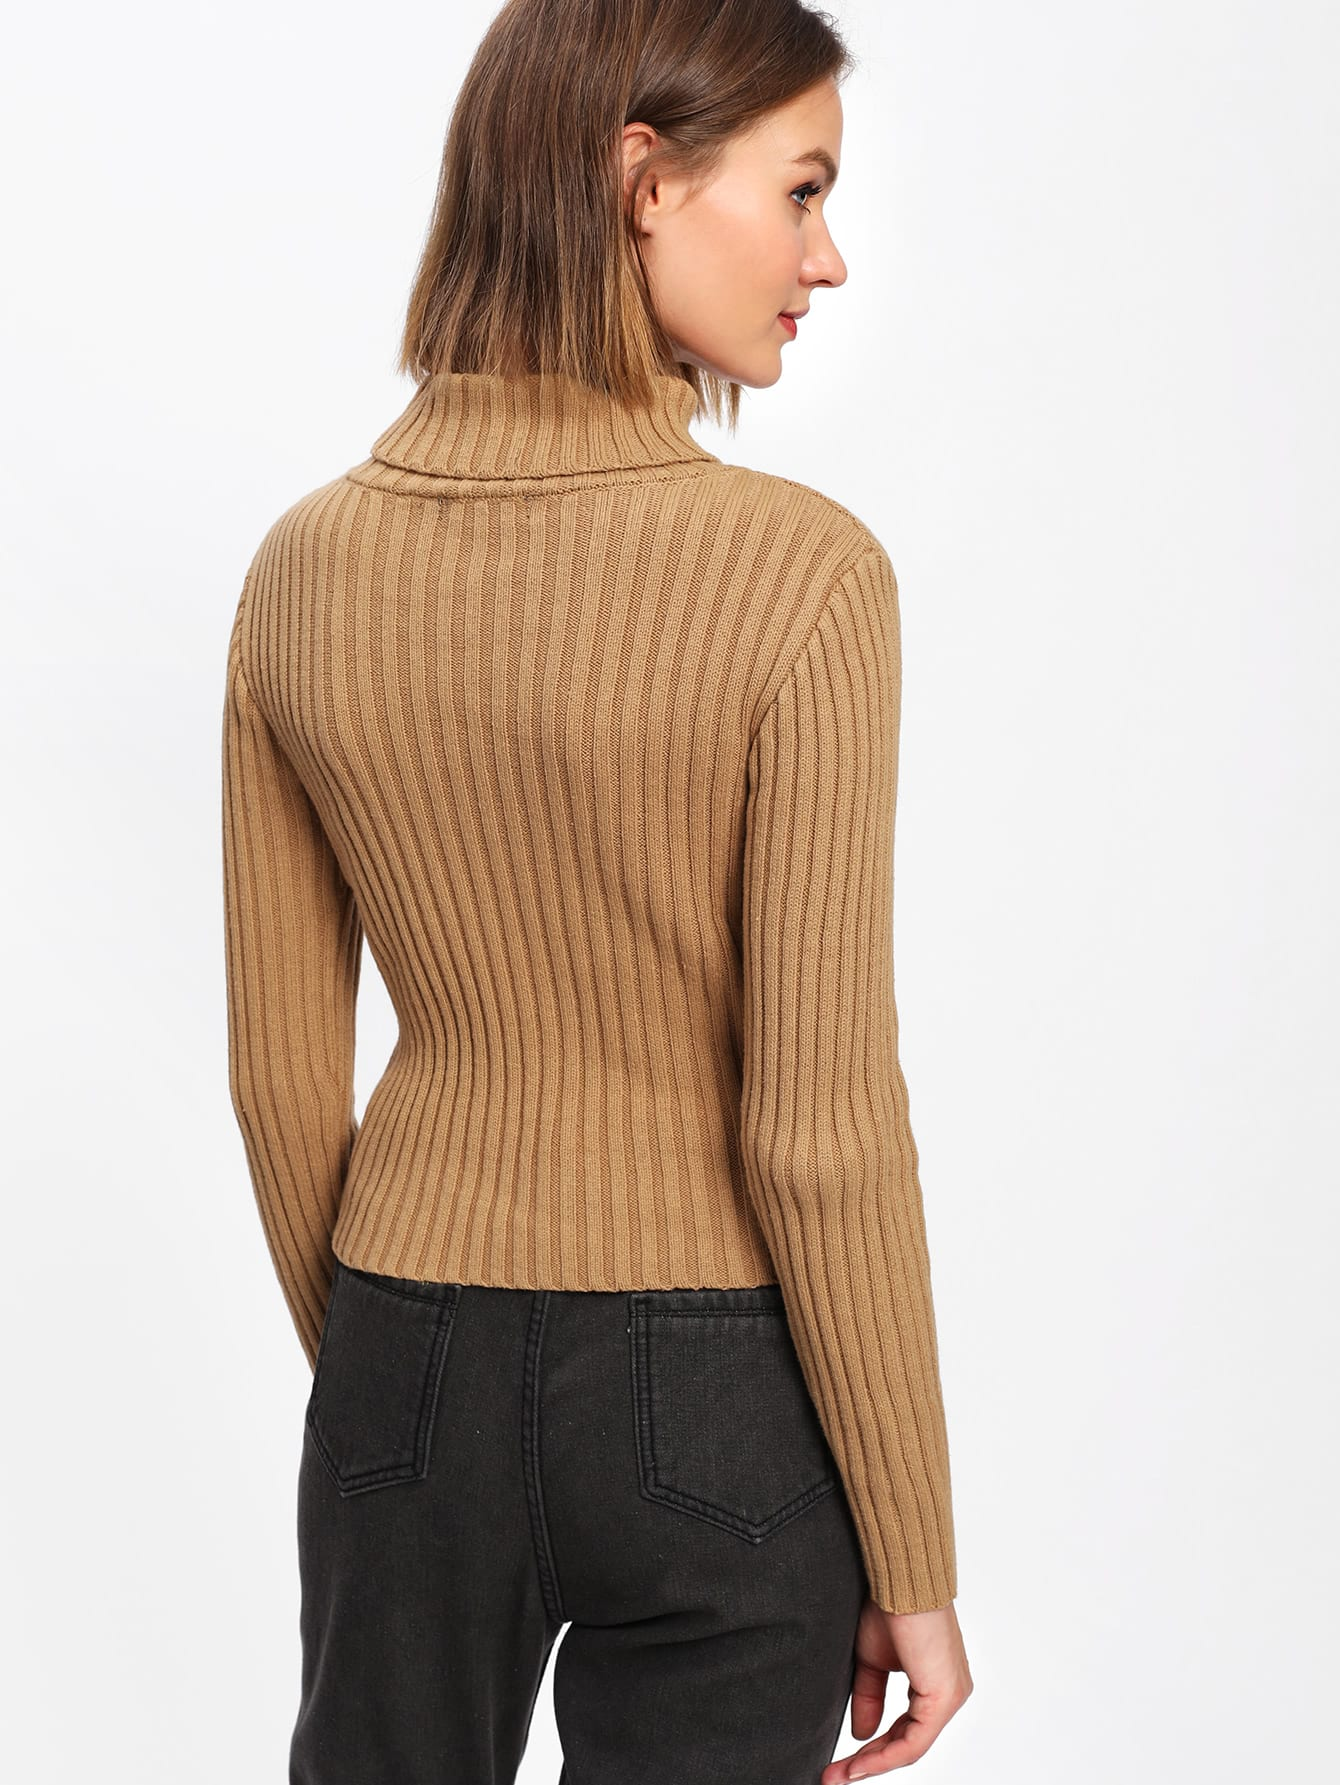 Rib Knit Turtleneck Sweater -SheIn(Sheinside)